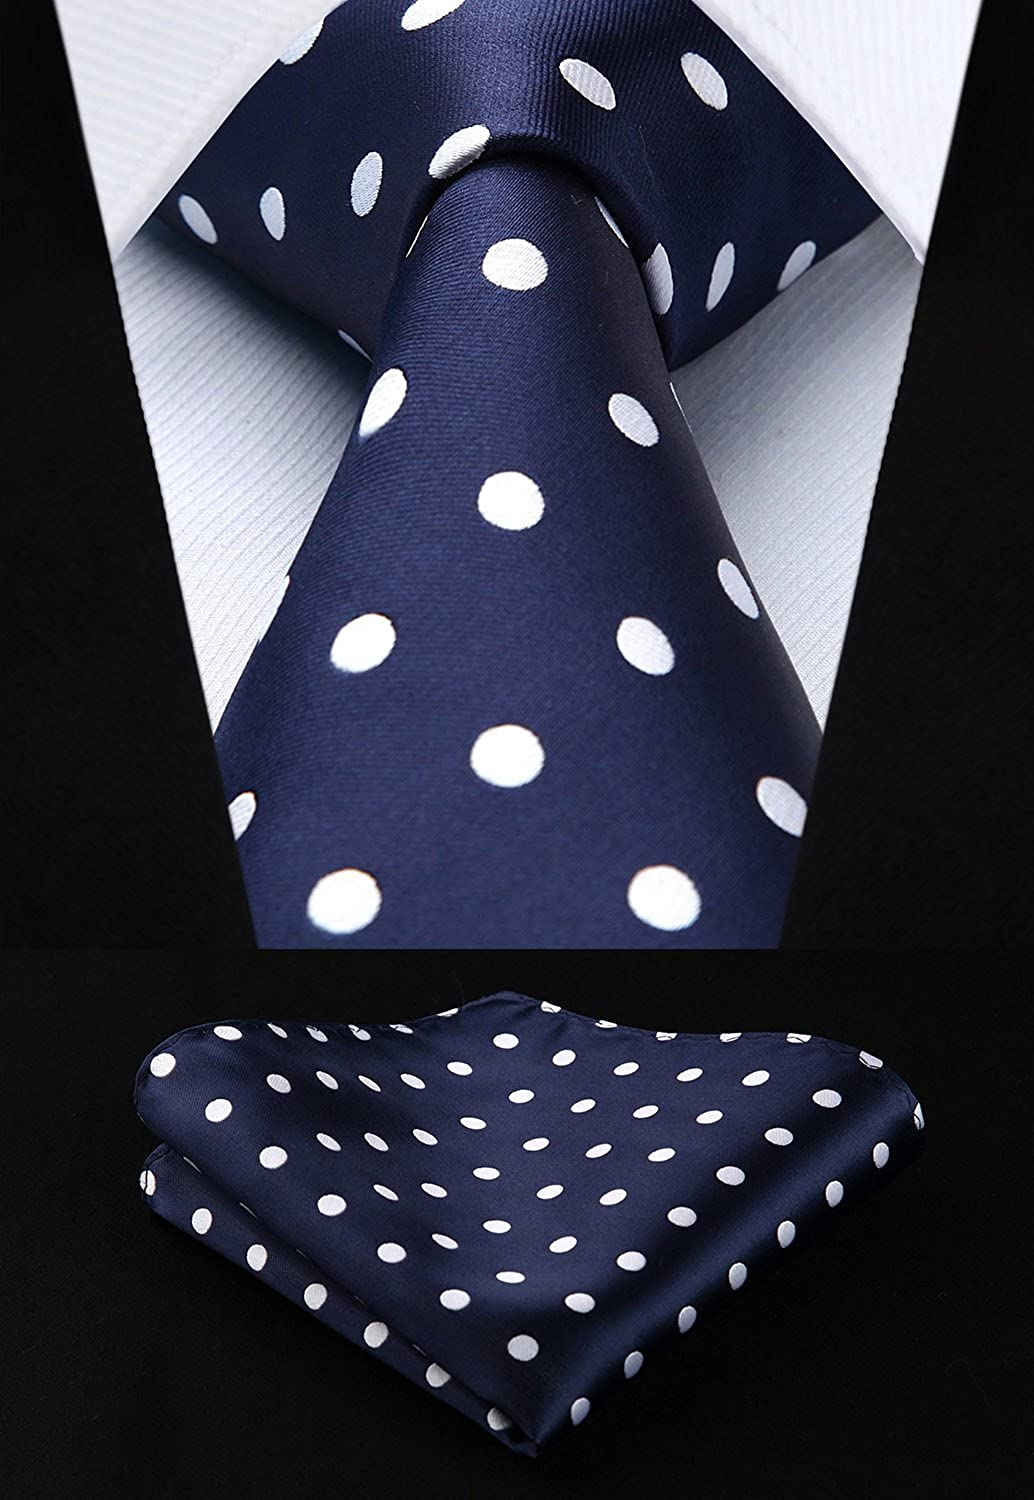 HISDERN Dot Floral Wedding Tie Handkerchief Men's Necktie & Pocket Square Set